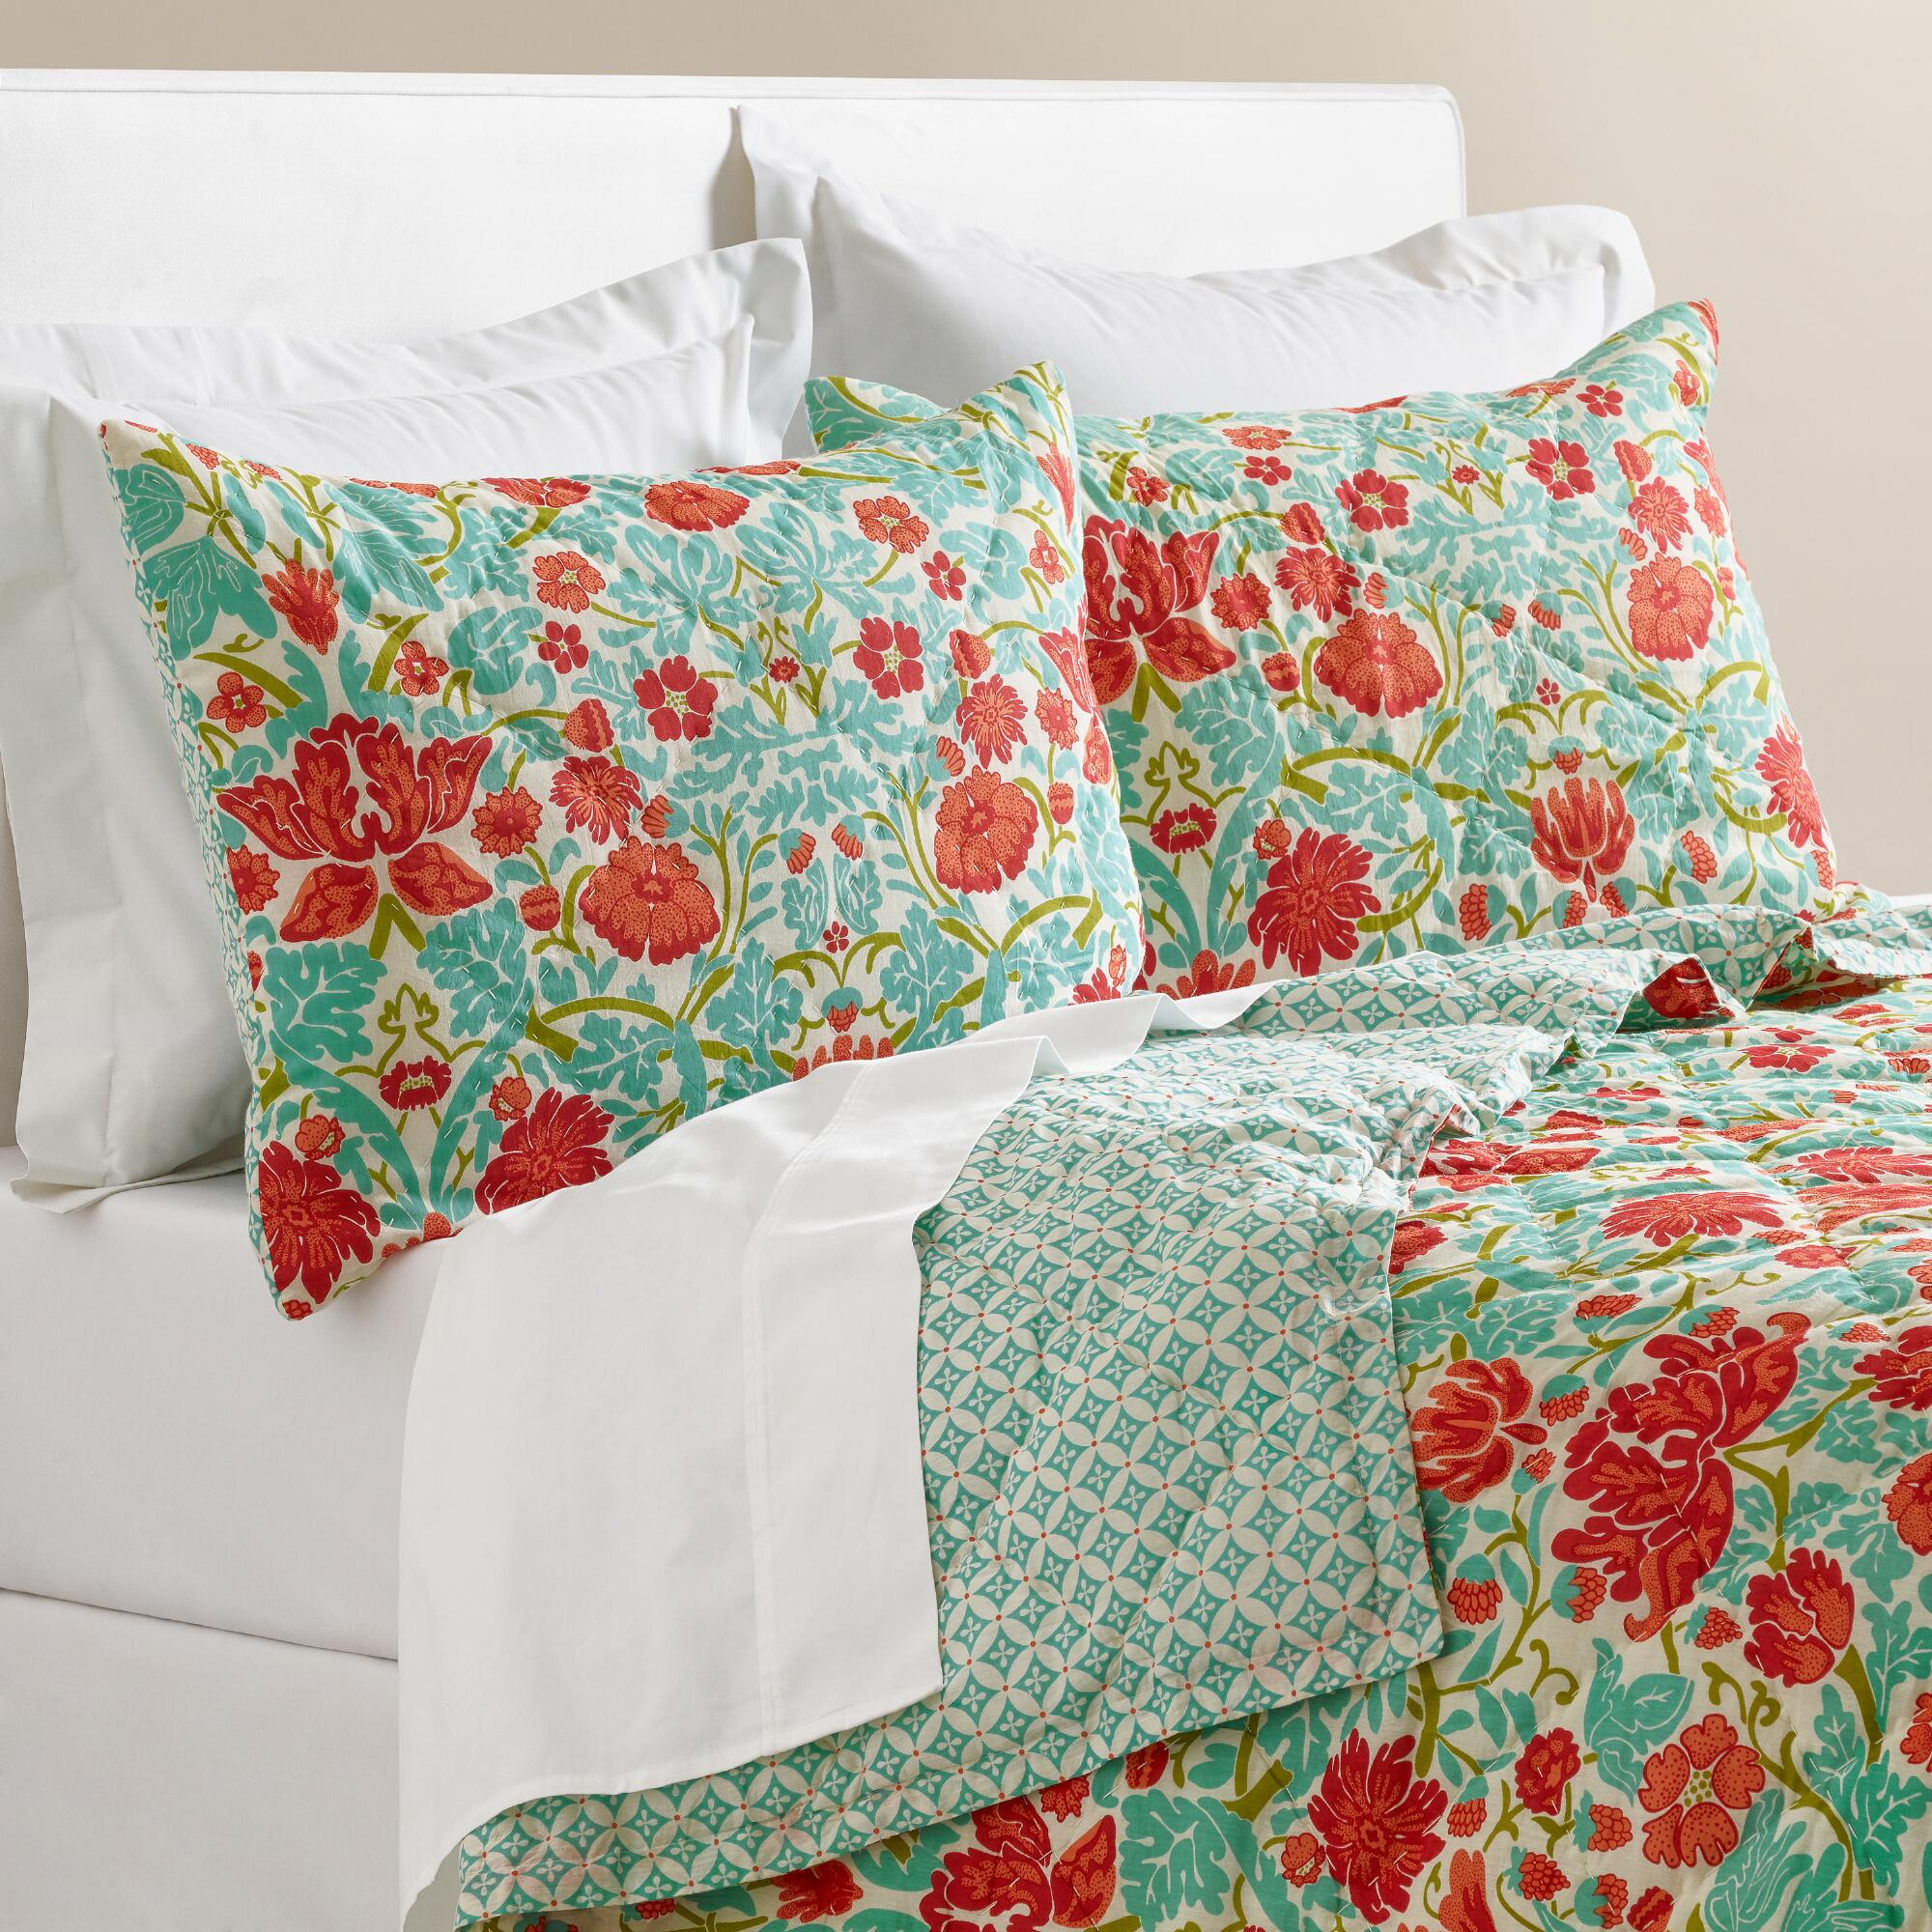 Coral and Turquoise Floral Camille Bedding Collection ...